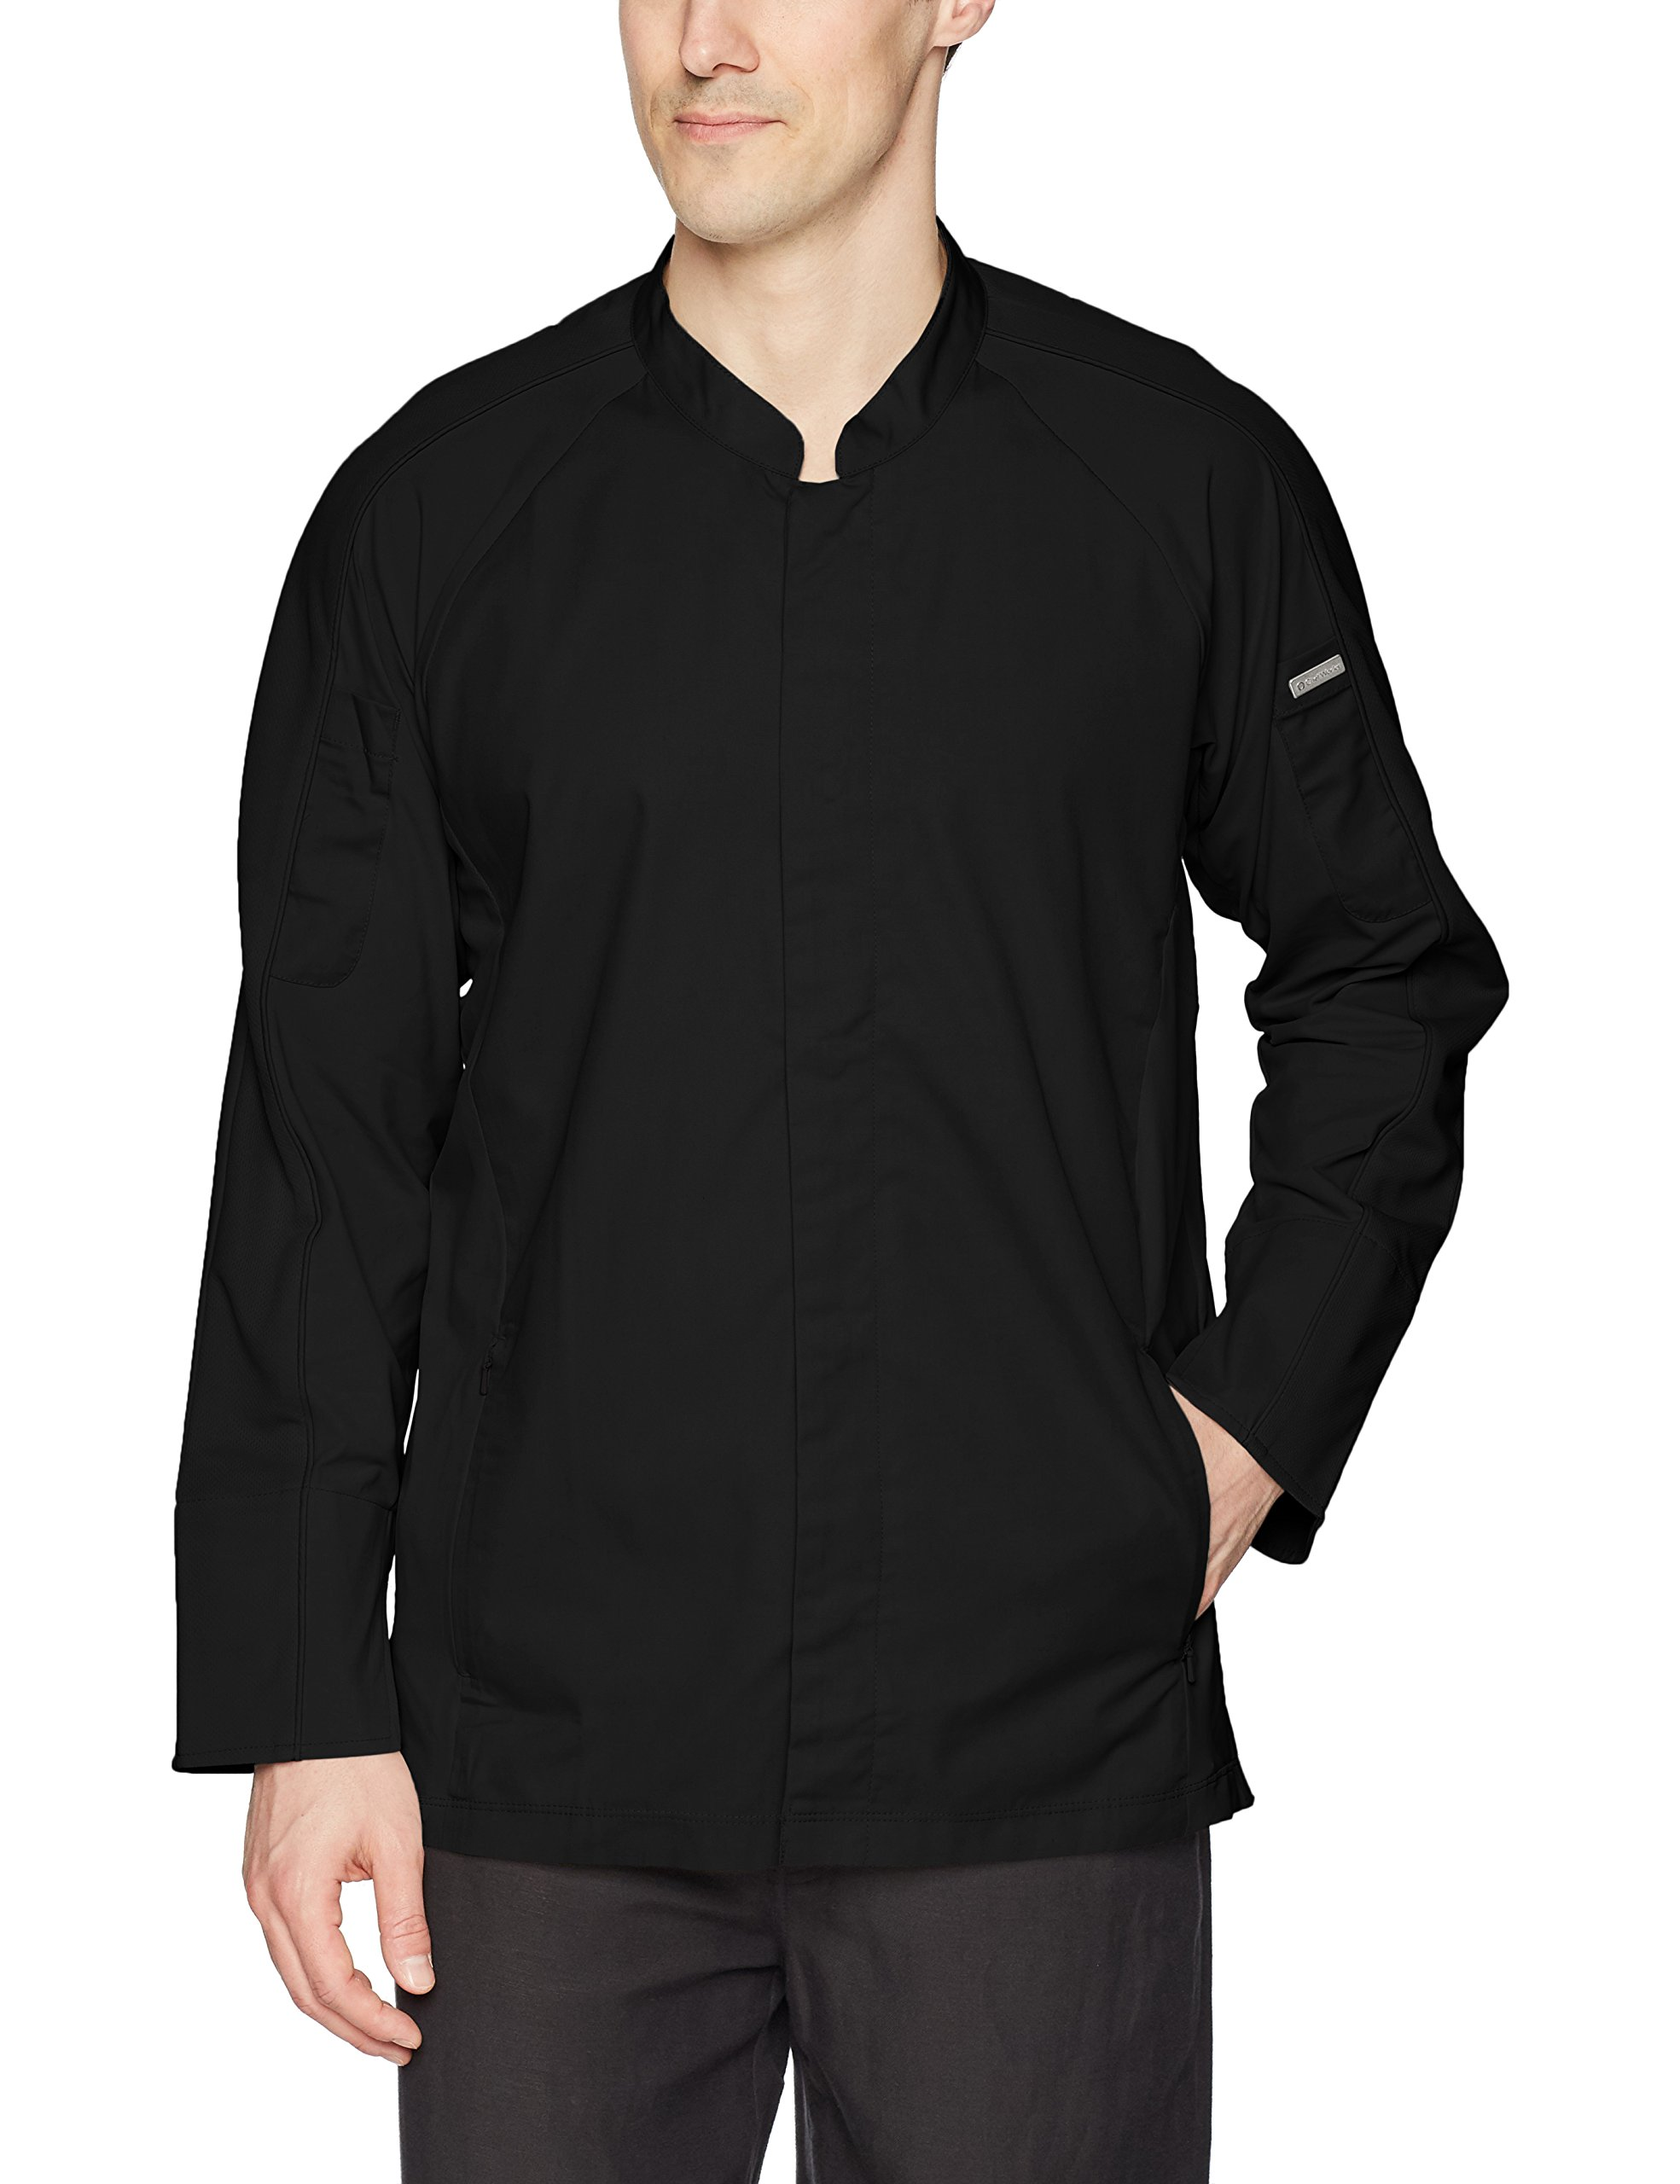 Chef Works Men's Valencia Chef Coat, Black, 2X-Large by Chef Works